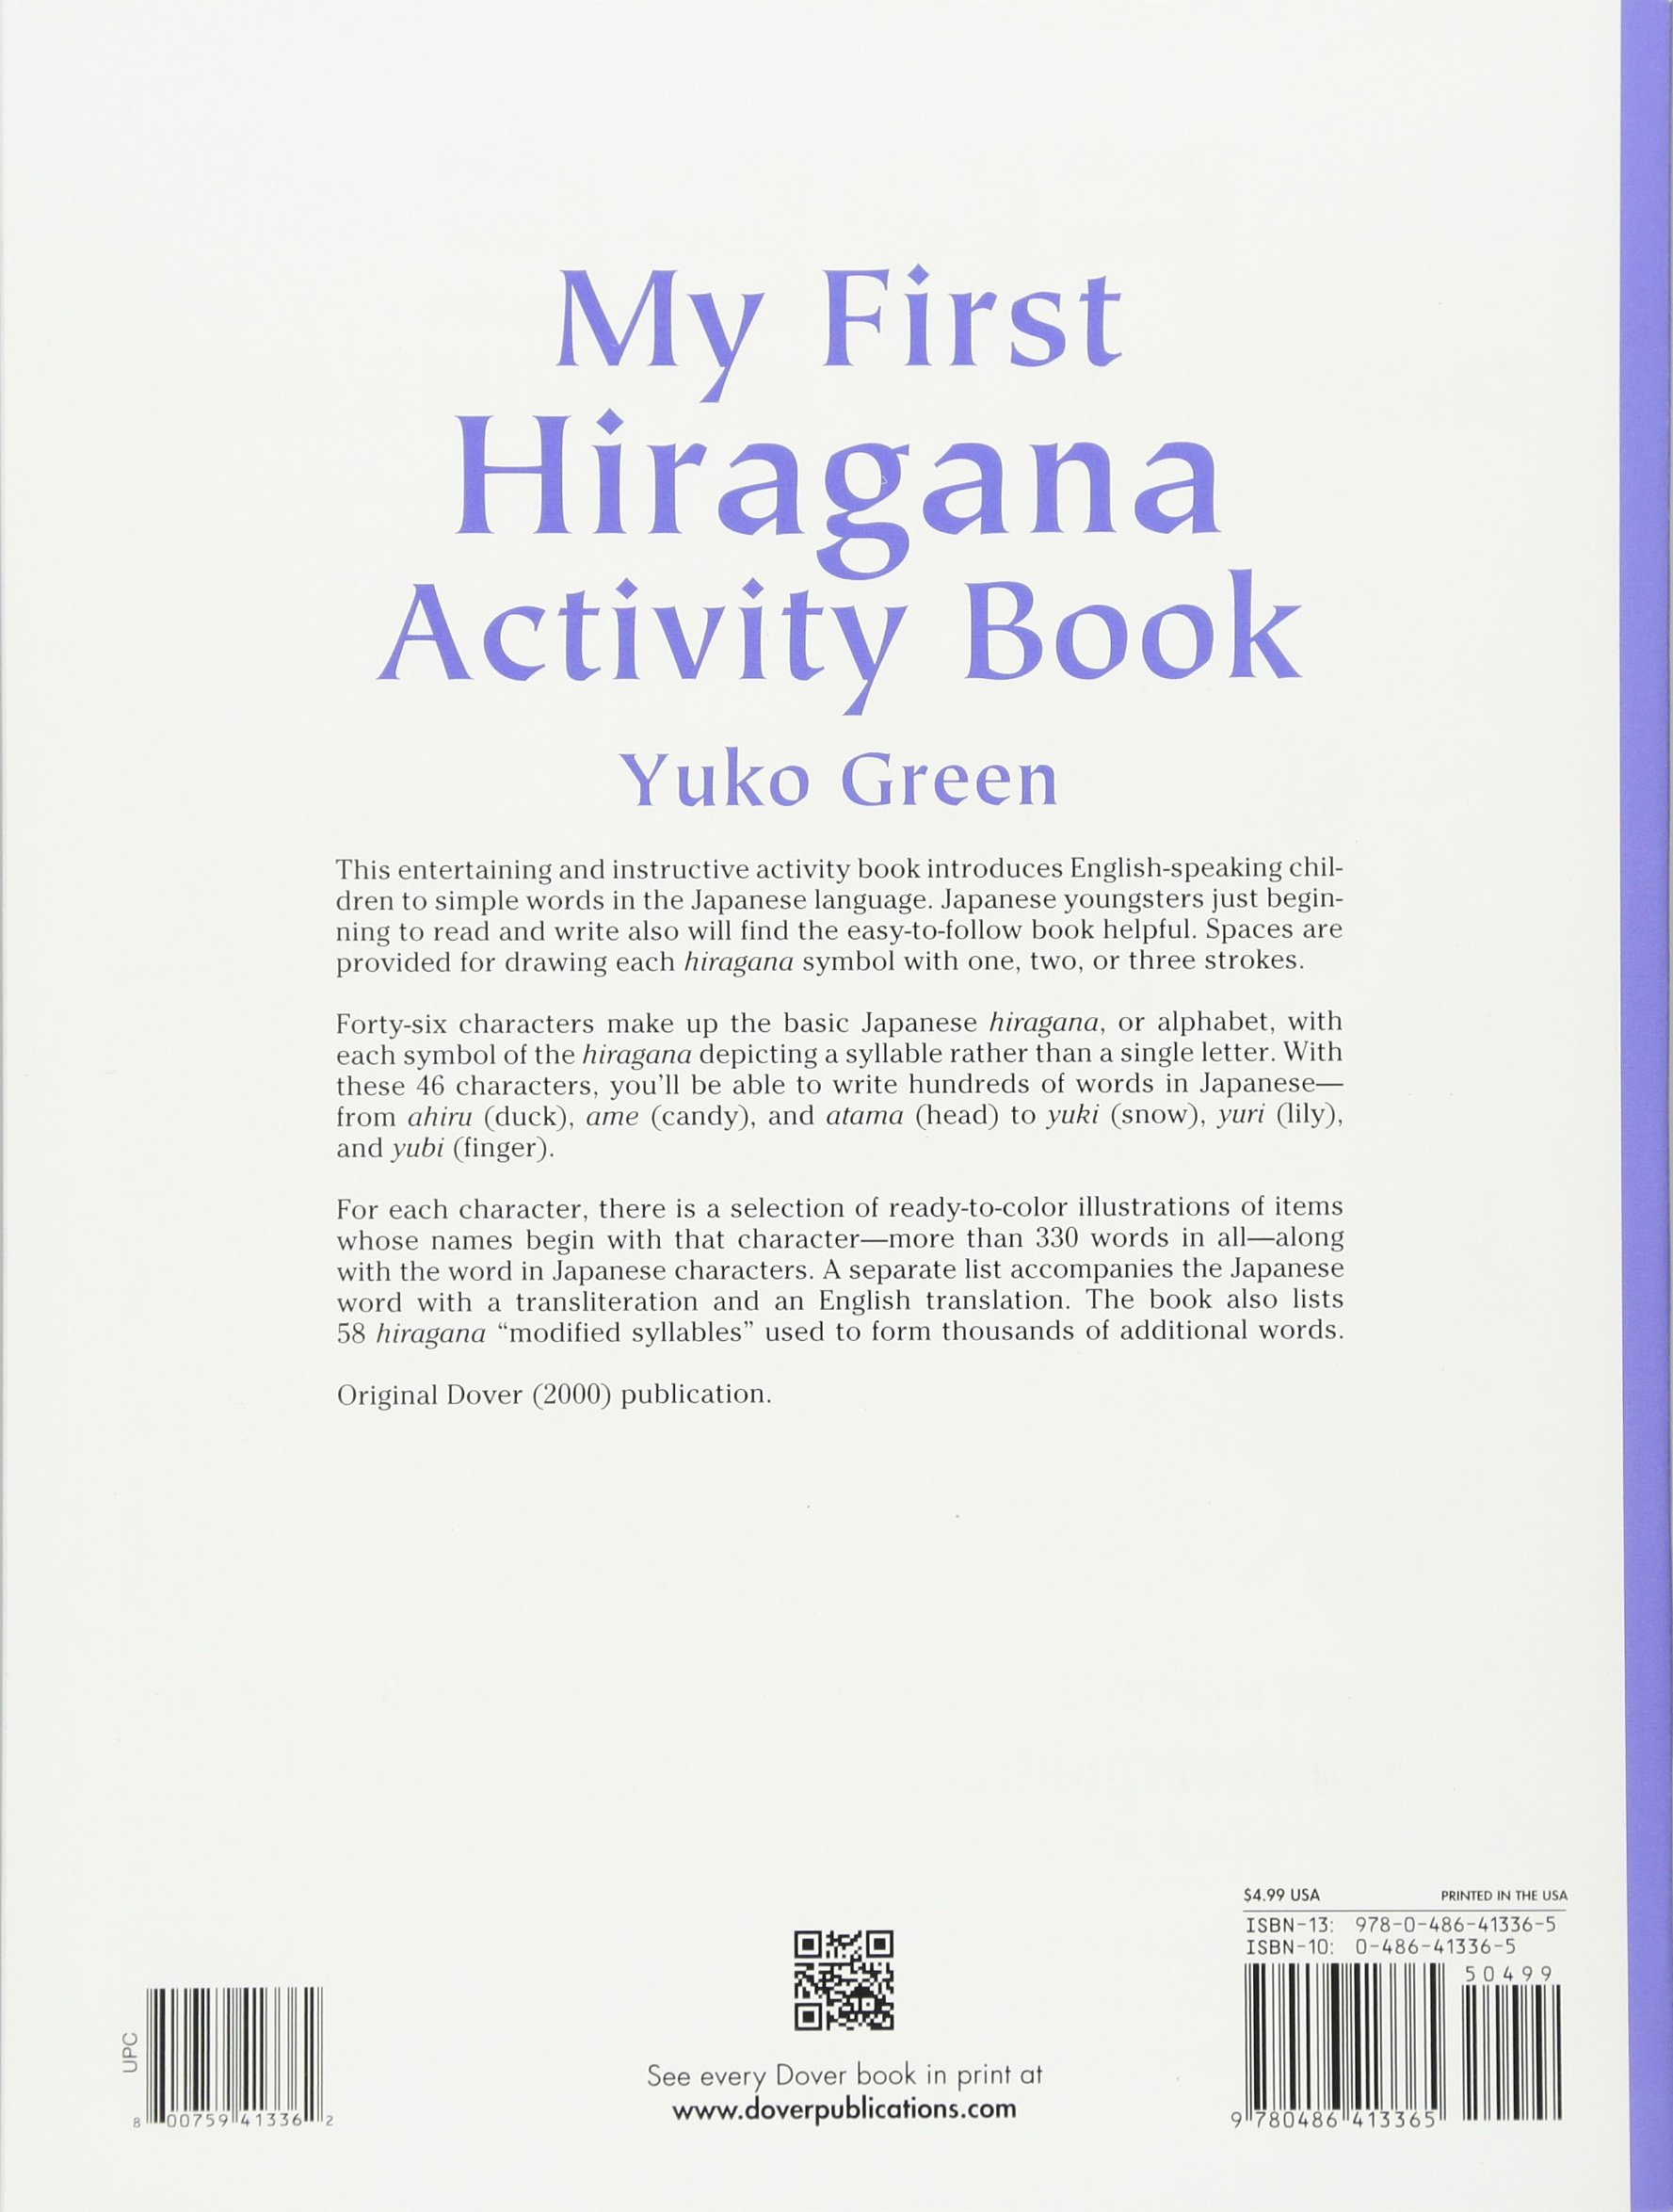 My first hiragana activity book dover childrens activity books my first hiragana activity book dover childrens activity books yuko green 0800759413362 amazon books biocorpaavc Gallery